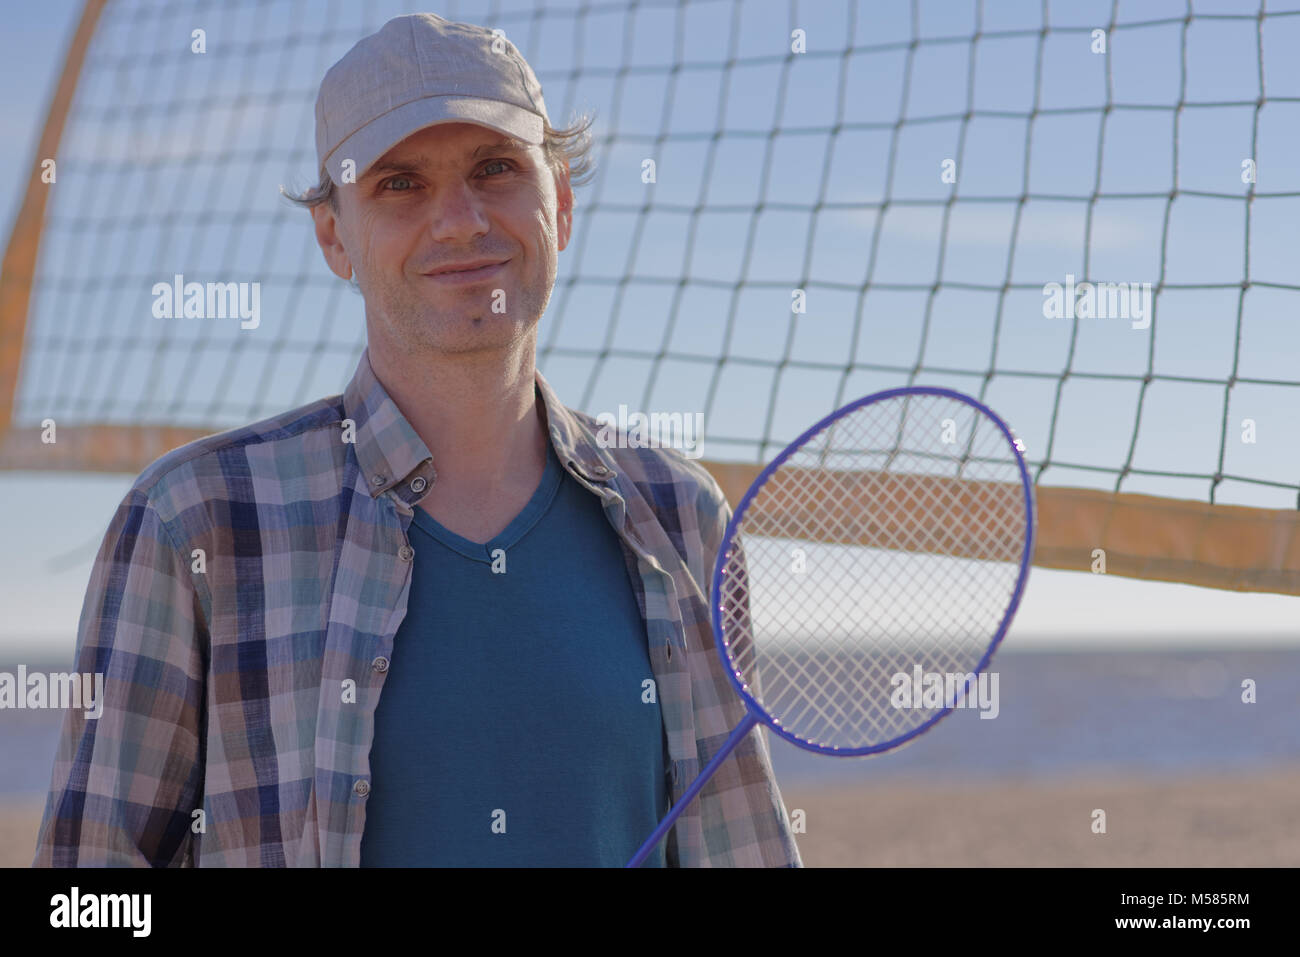 Mature man with badminton racket on a beach - Stock Image